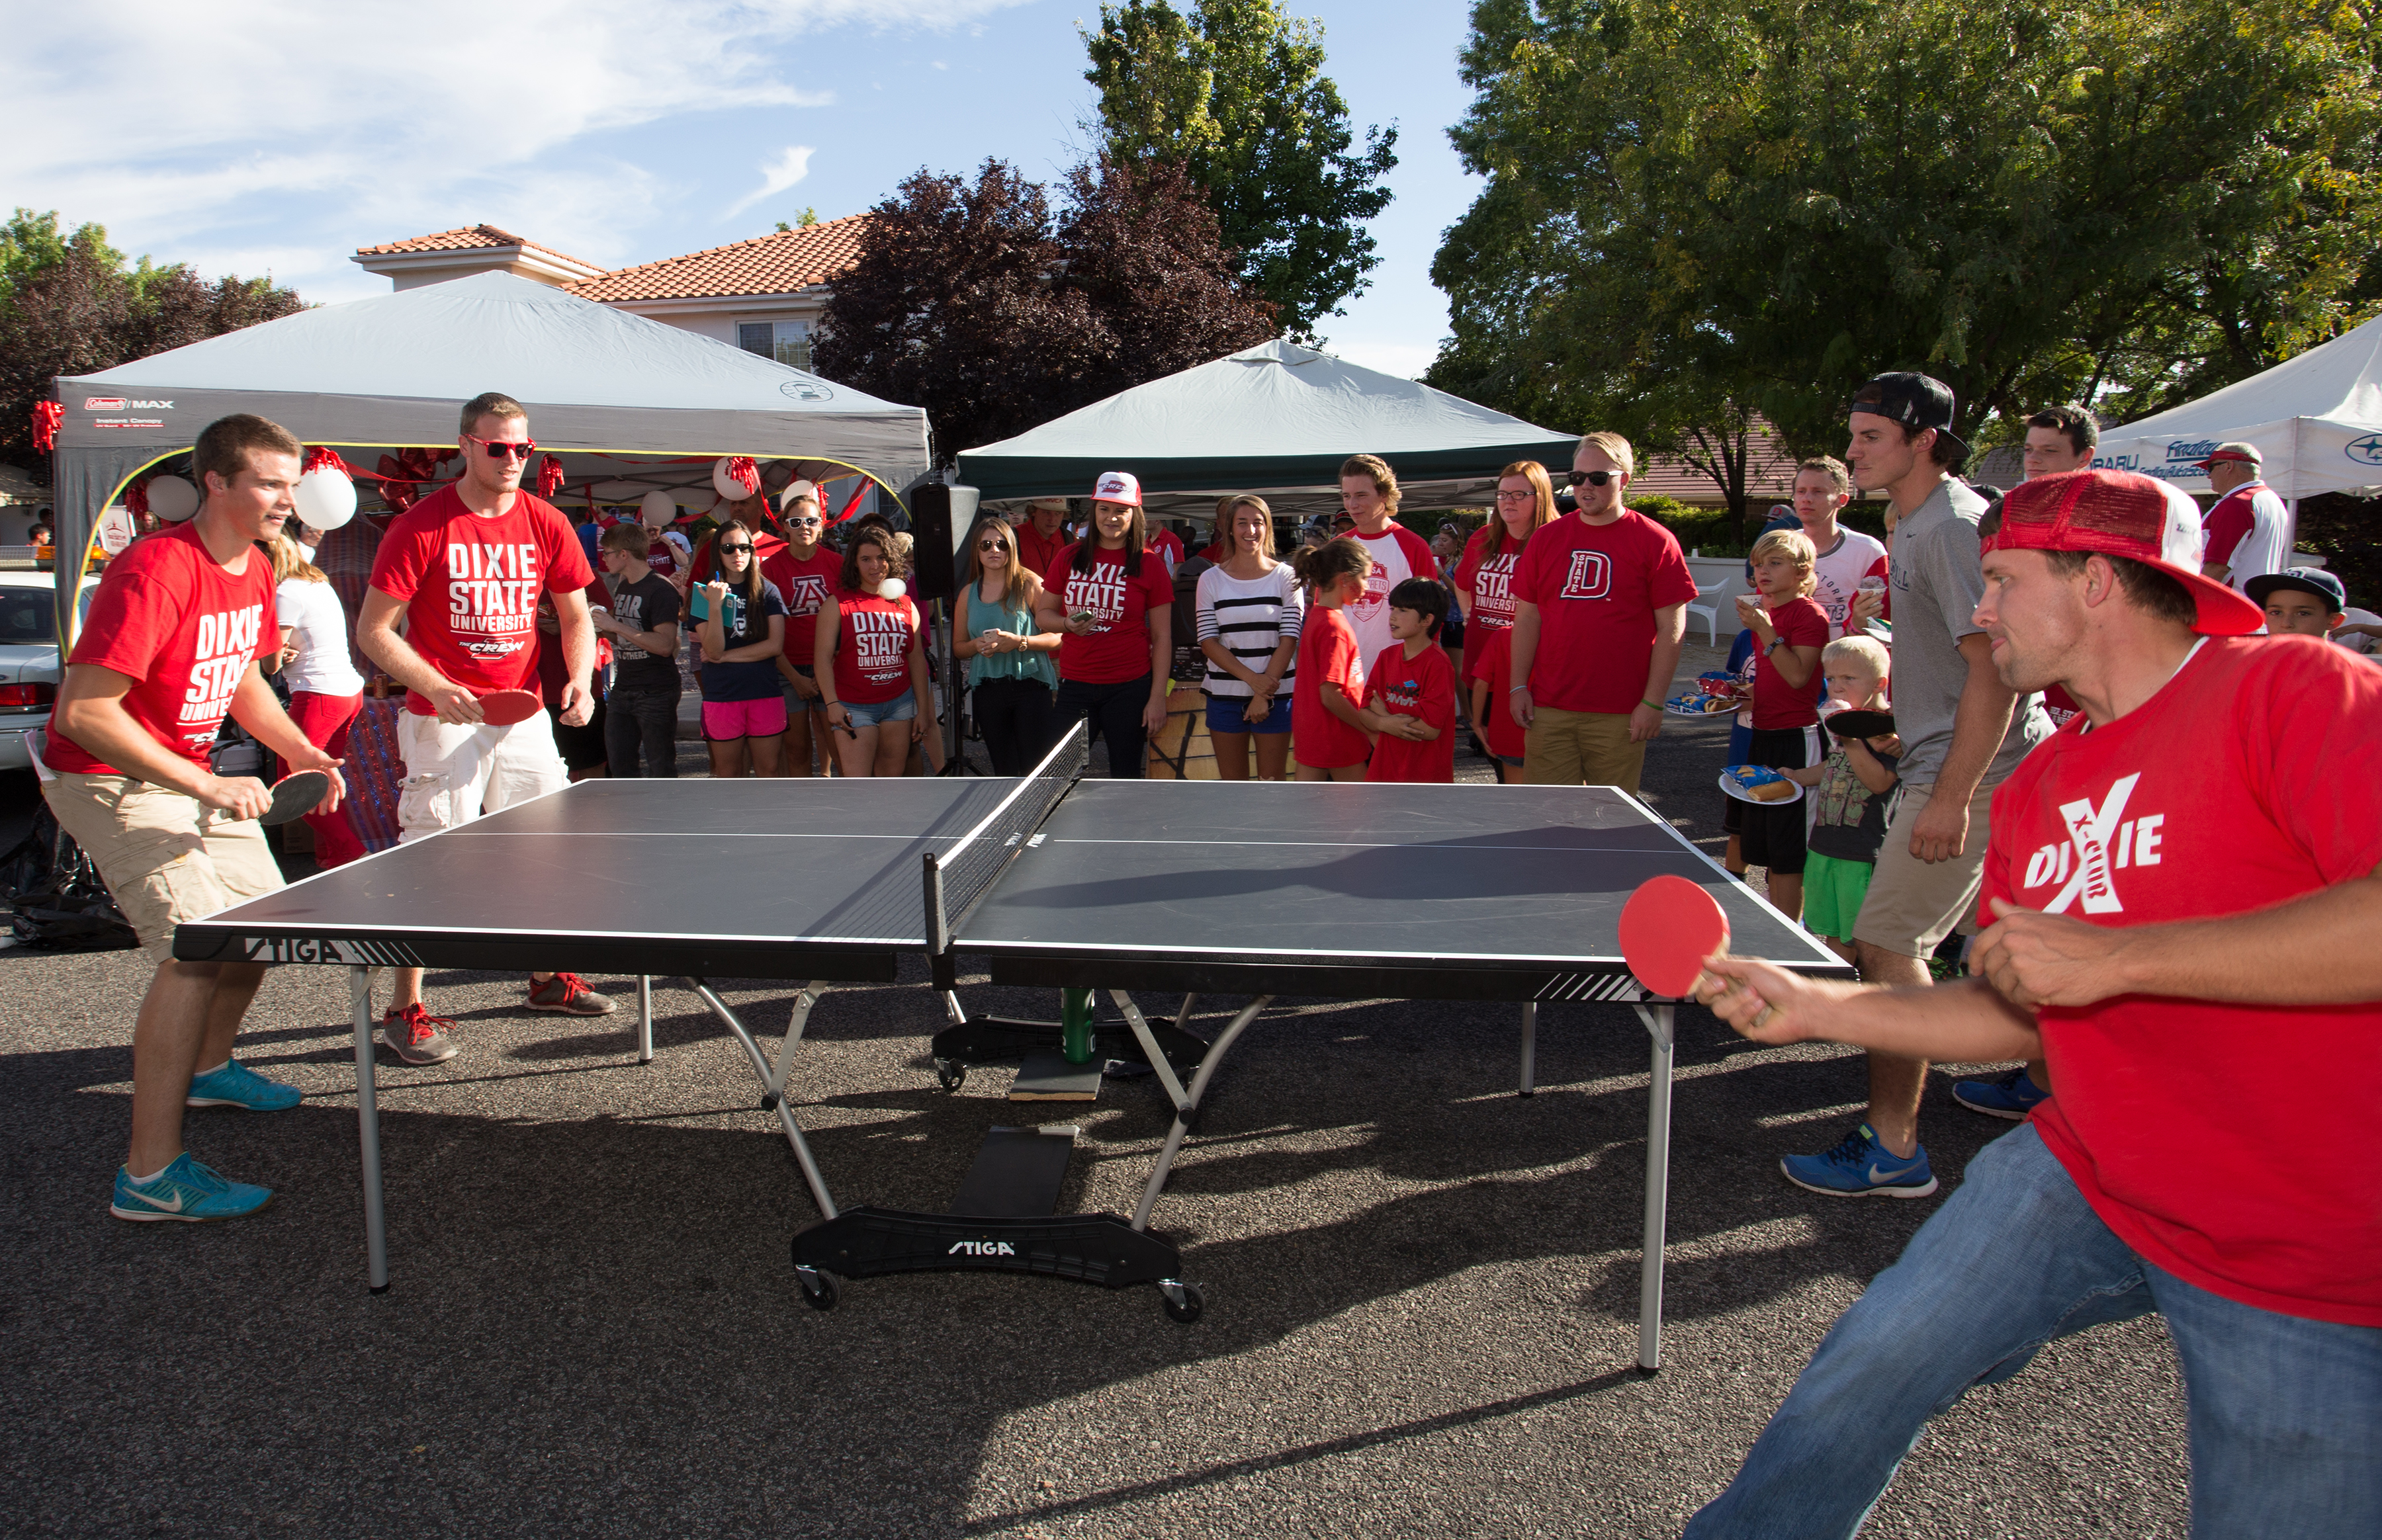 Dixie State University fans play a match of ping pong during the DSU Alumni Association's tailgate party at the Wade Alumni House, St. George, Utah, Sept. 29, 2015 | Photo courtesy of Dixie State University, St. George News